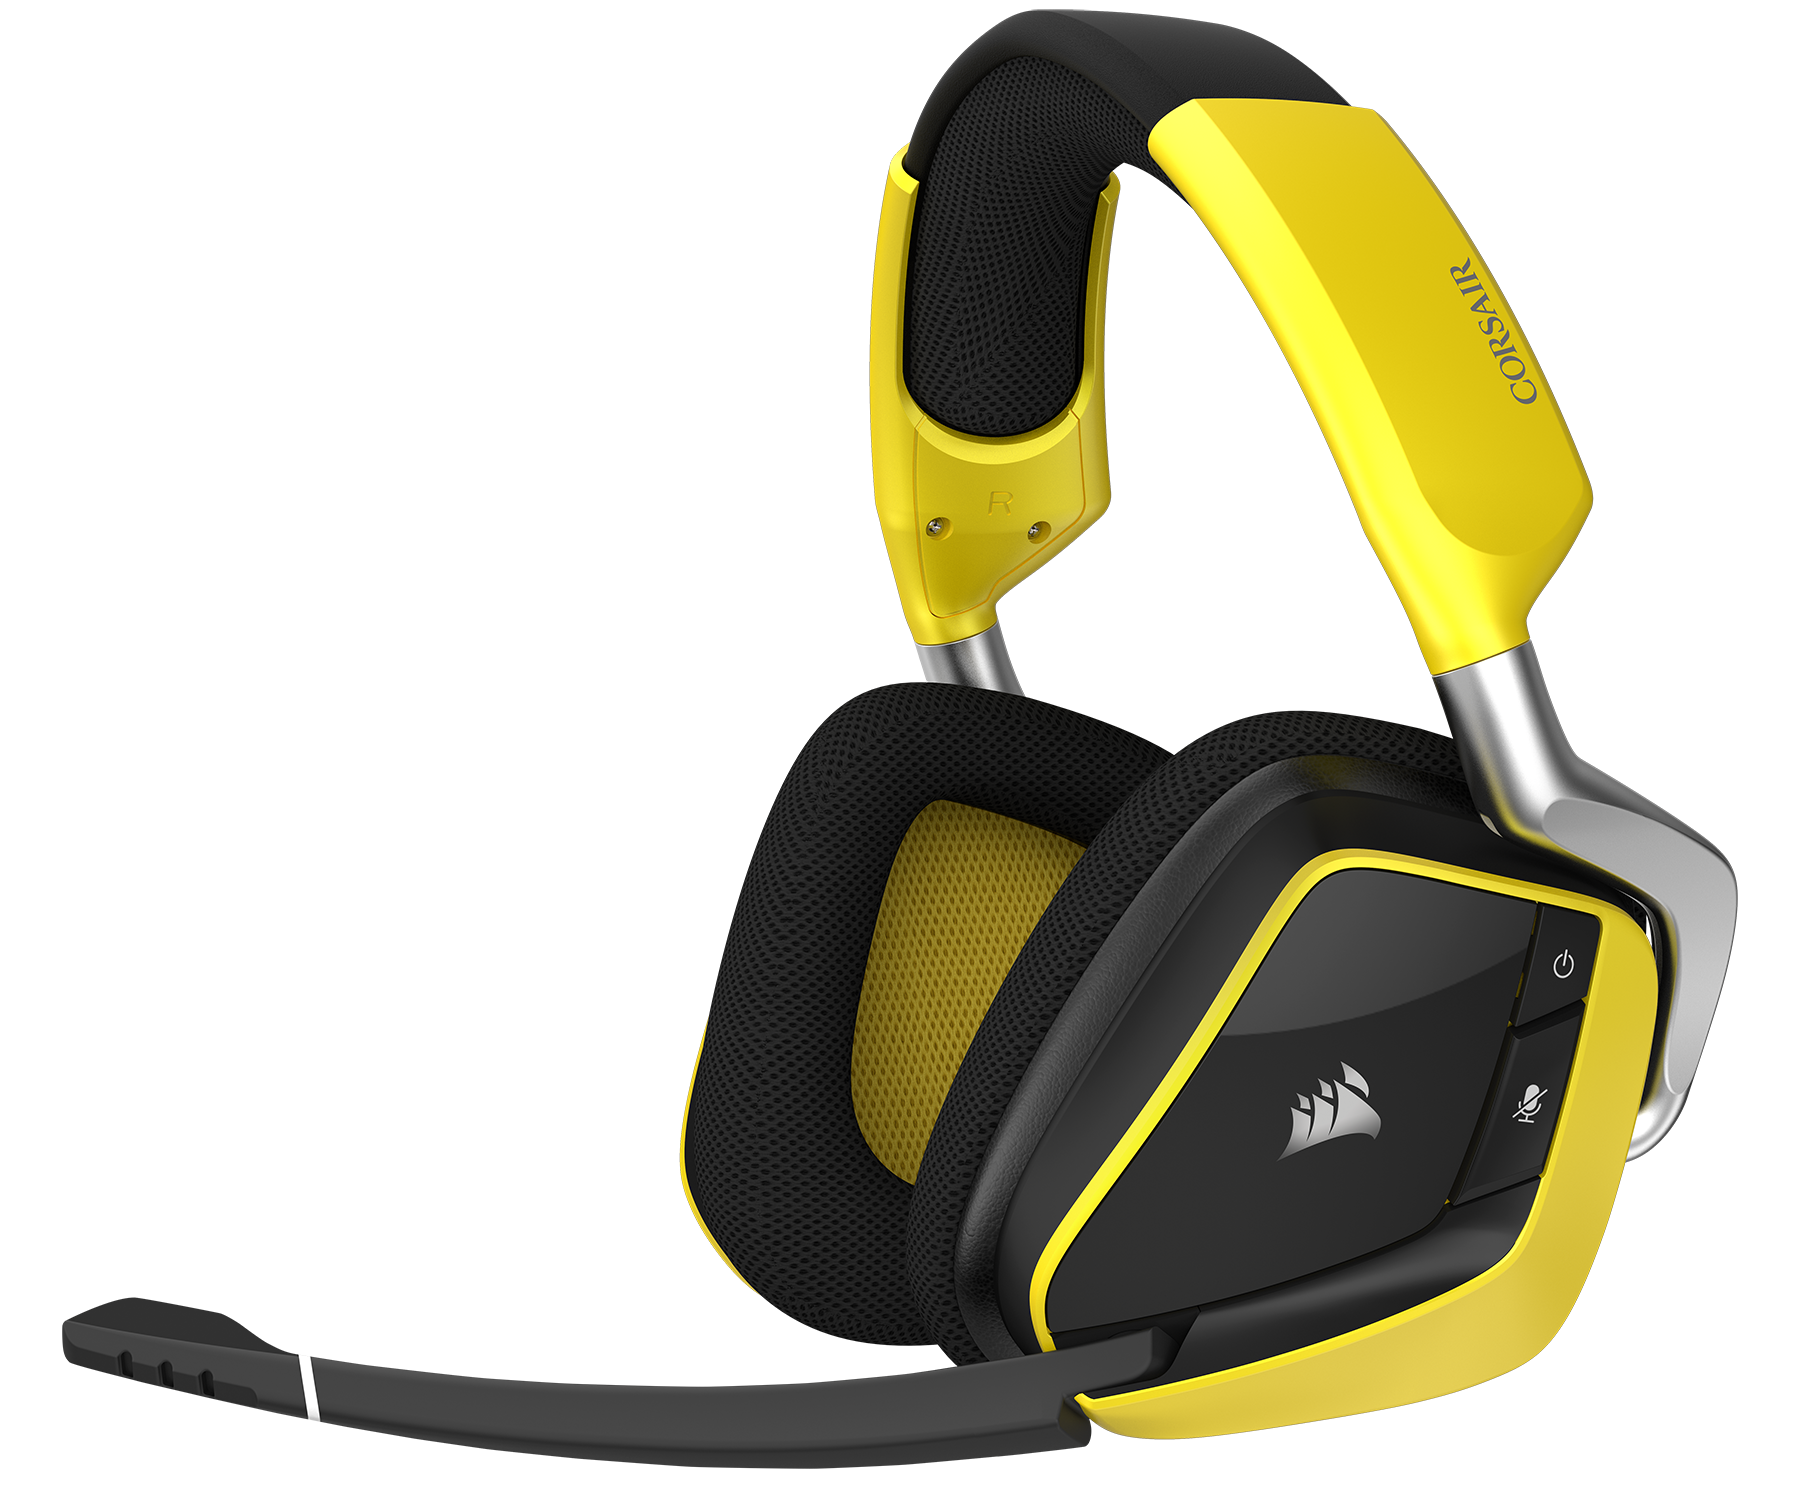 VOID PRO RGB Wireless SE Premium Gaming Headset with Dolby